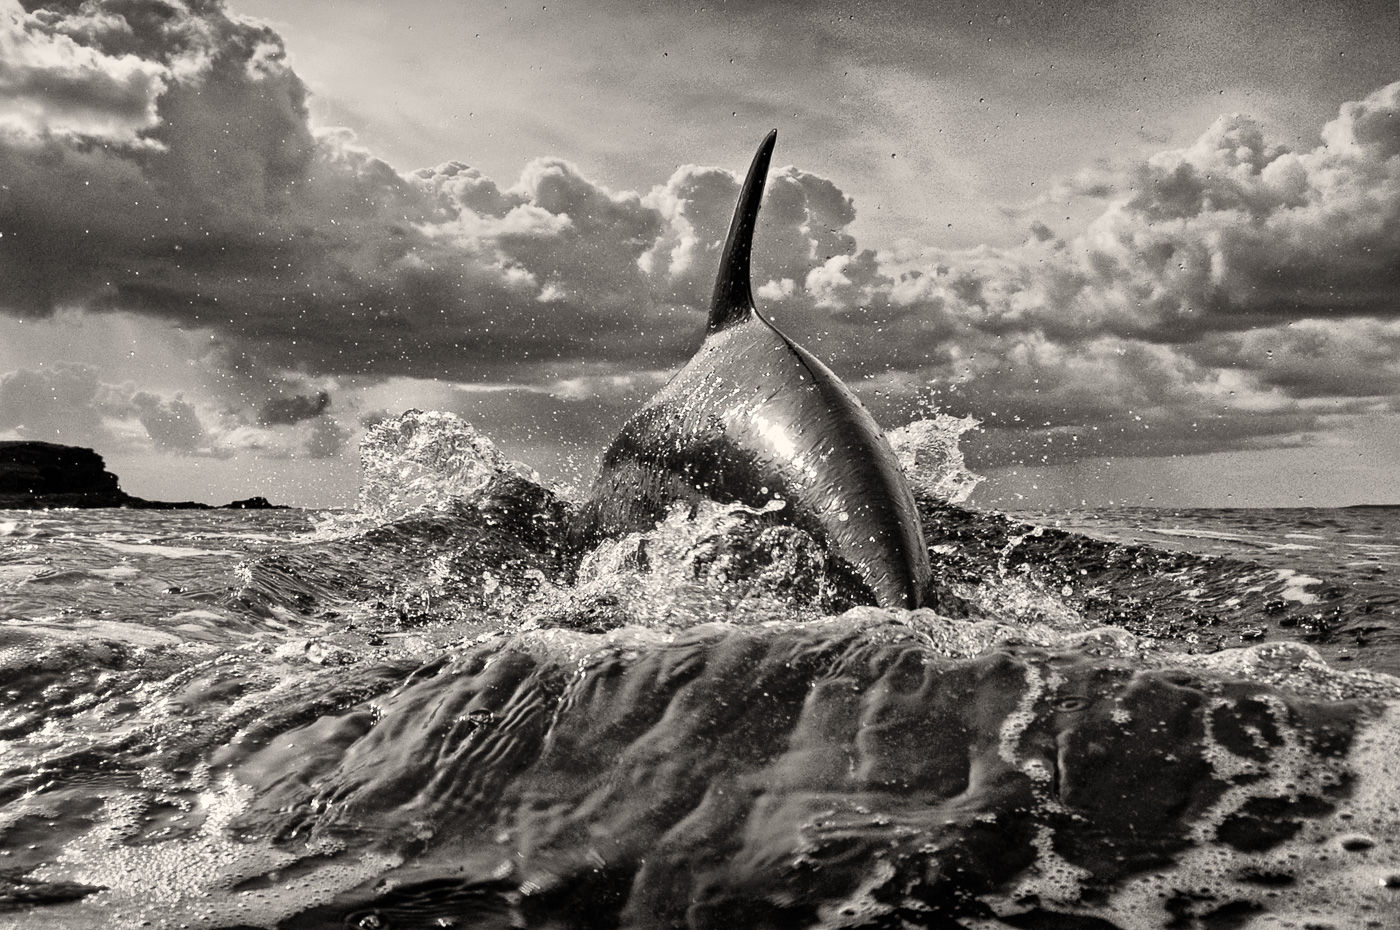 beautiful_dolphin photo black and white